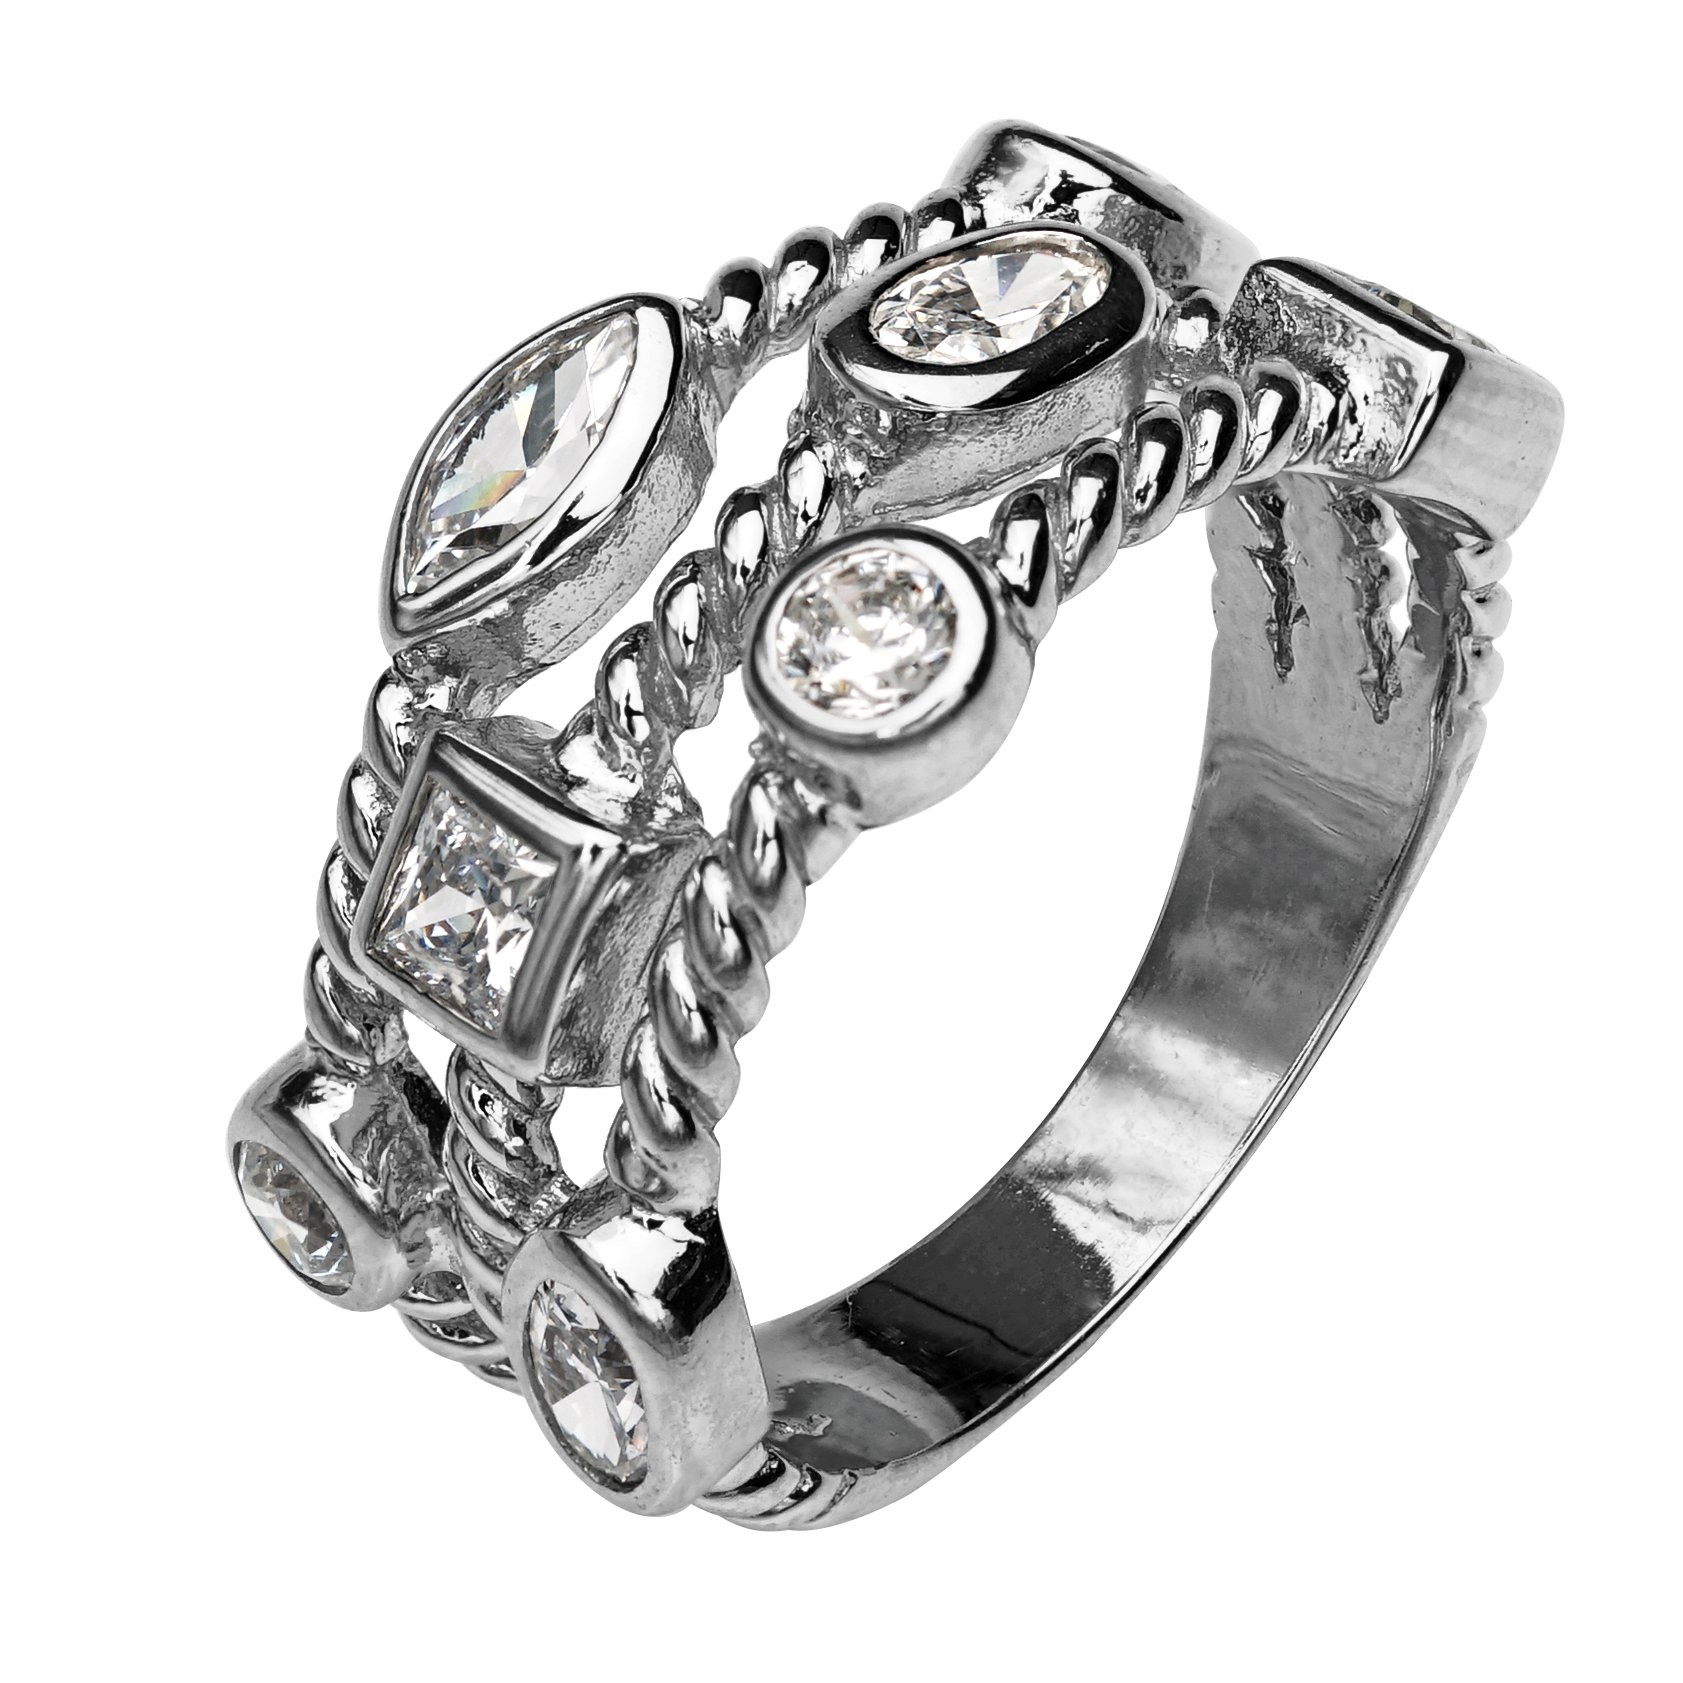 Paz Creations ♥925 Sterling Silver Cubic Zirconia Triple Row Band Ring (9), Made in Israel